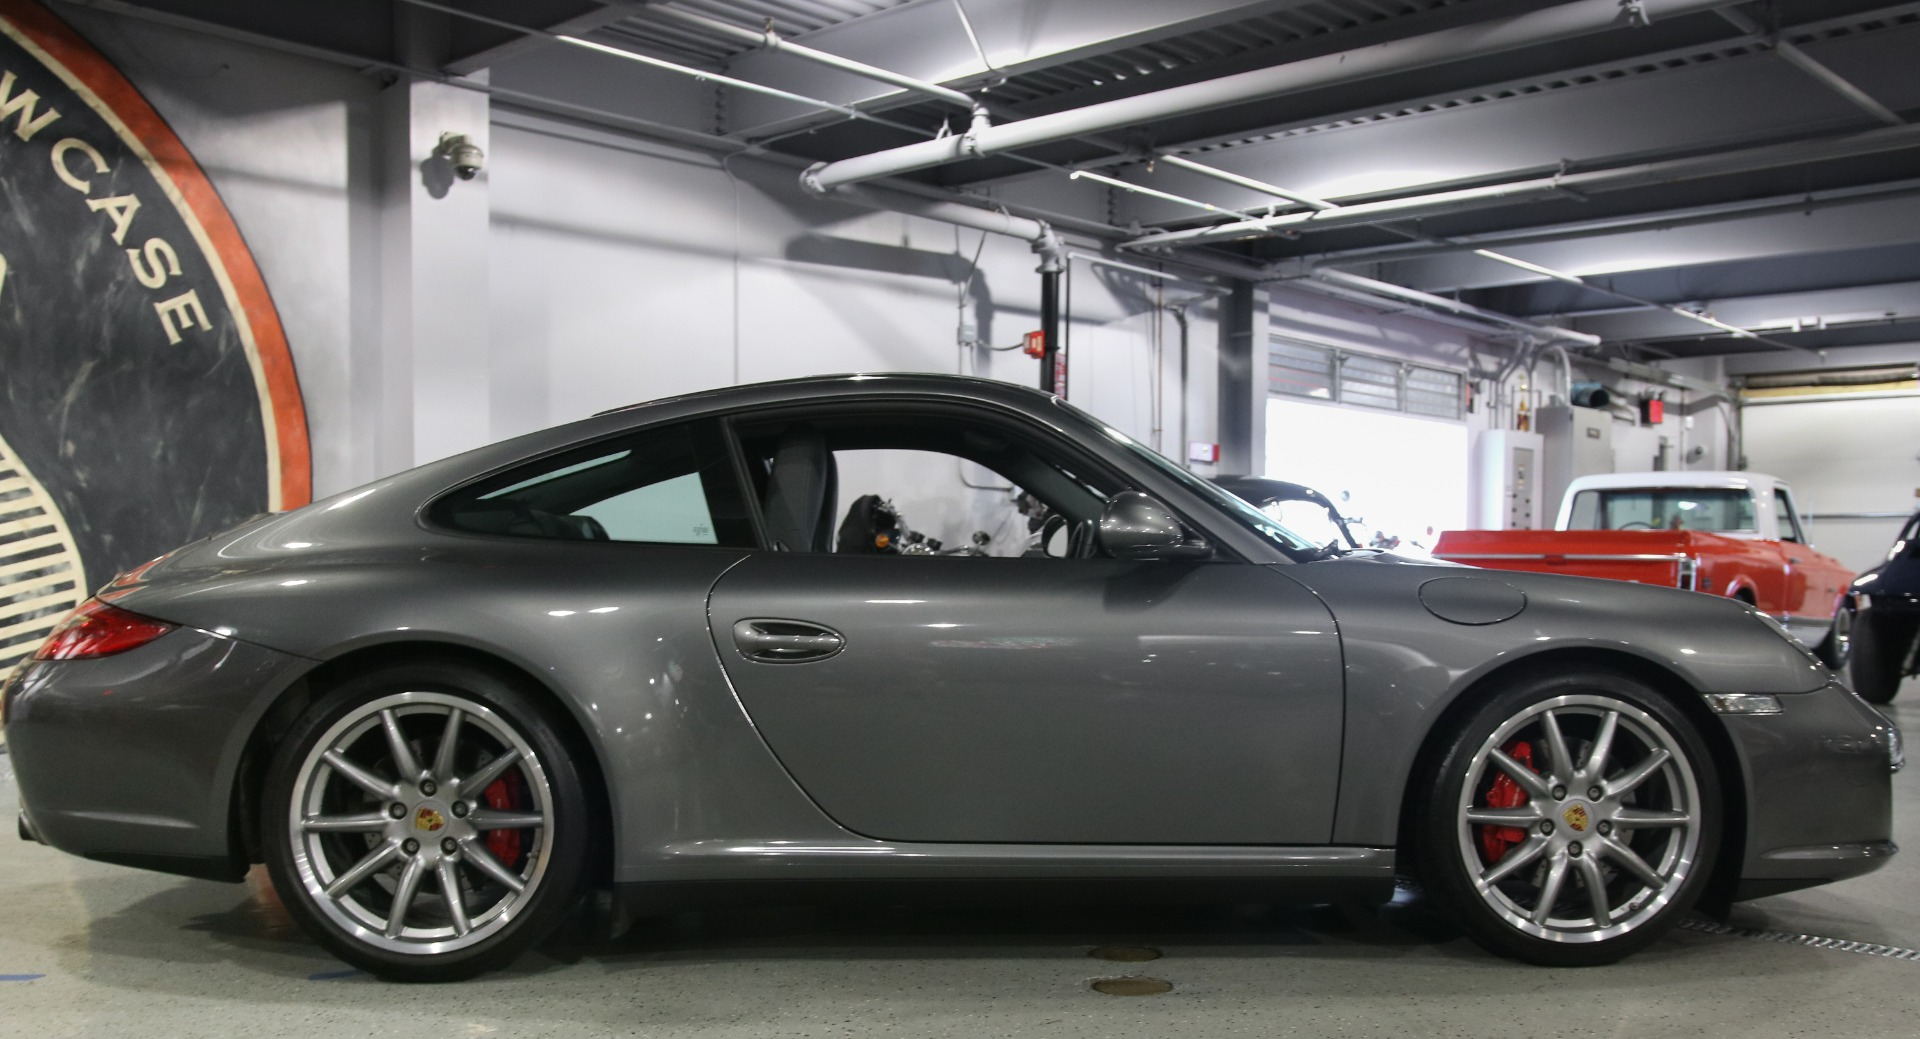 2009 Porsche 911 Carrera 4s Coupe Stock 1244 For Sale